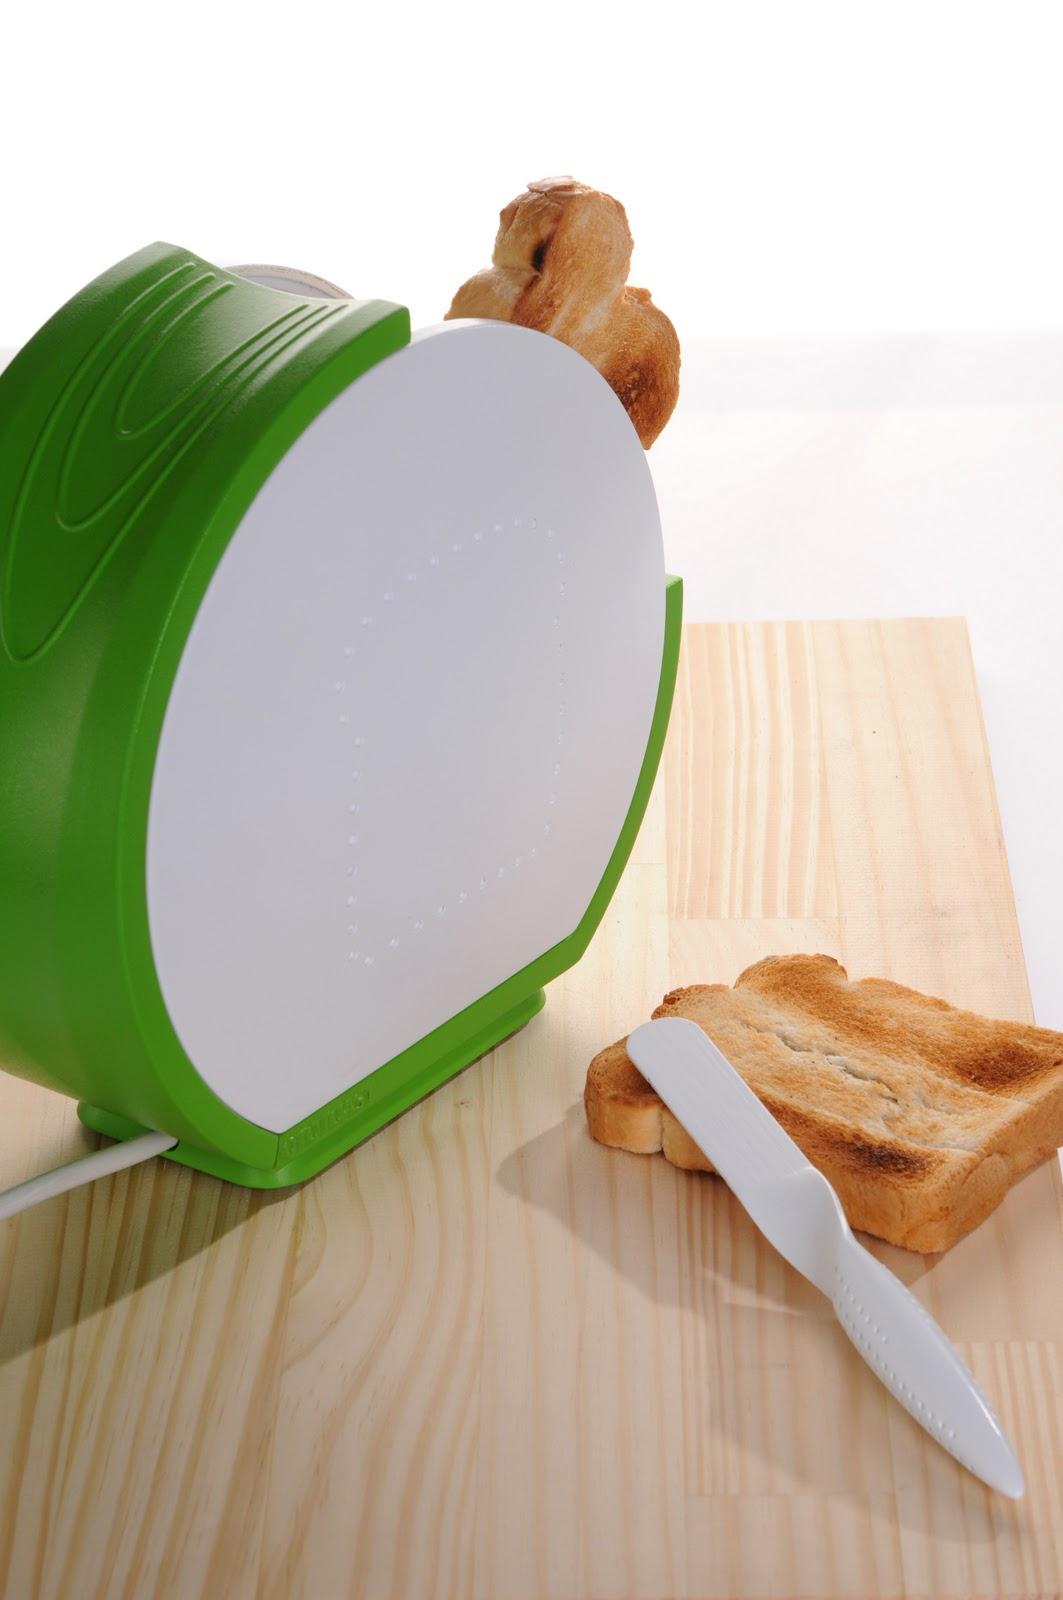 awesome-design-ideas-ototoast-Toaster-Yaksein-Eliran-2